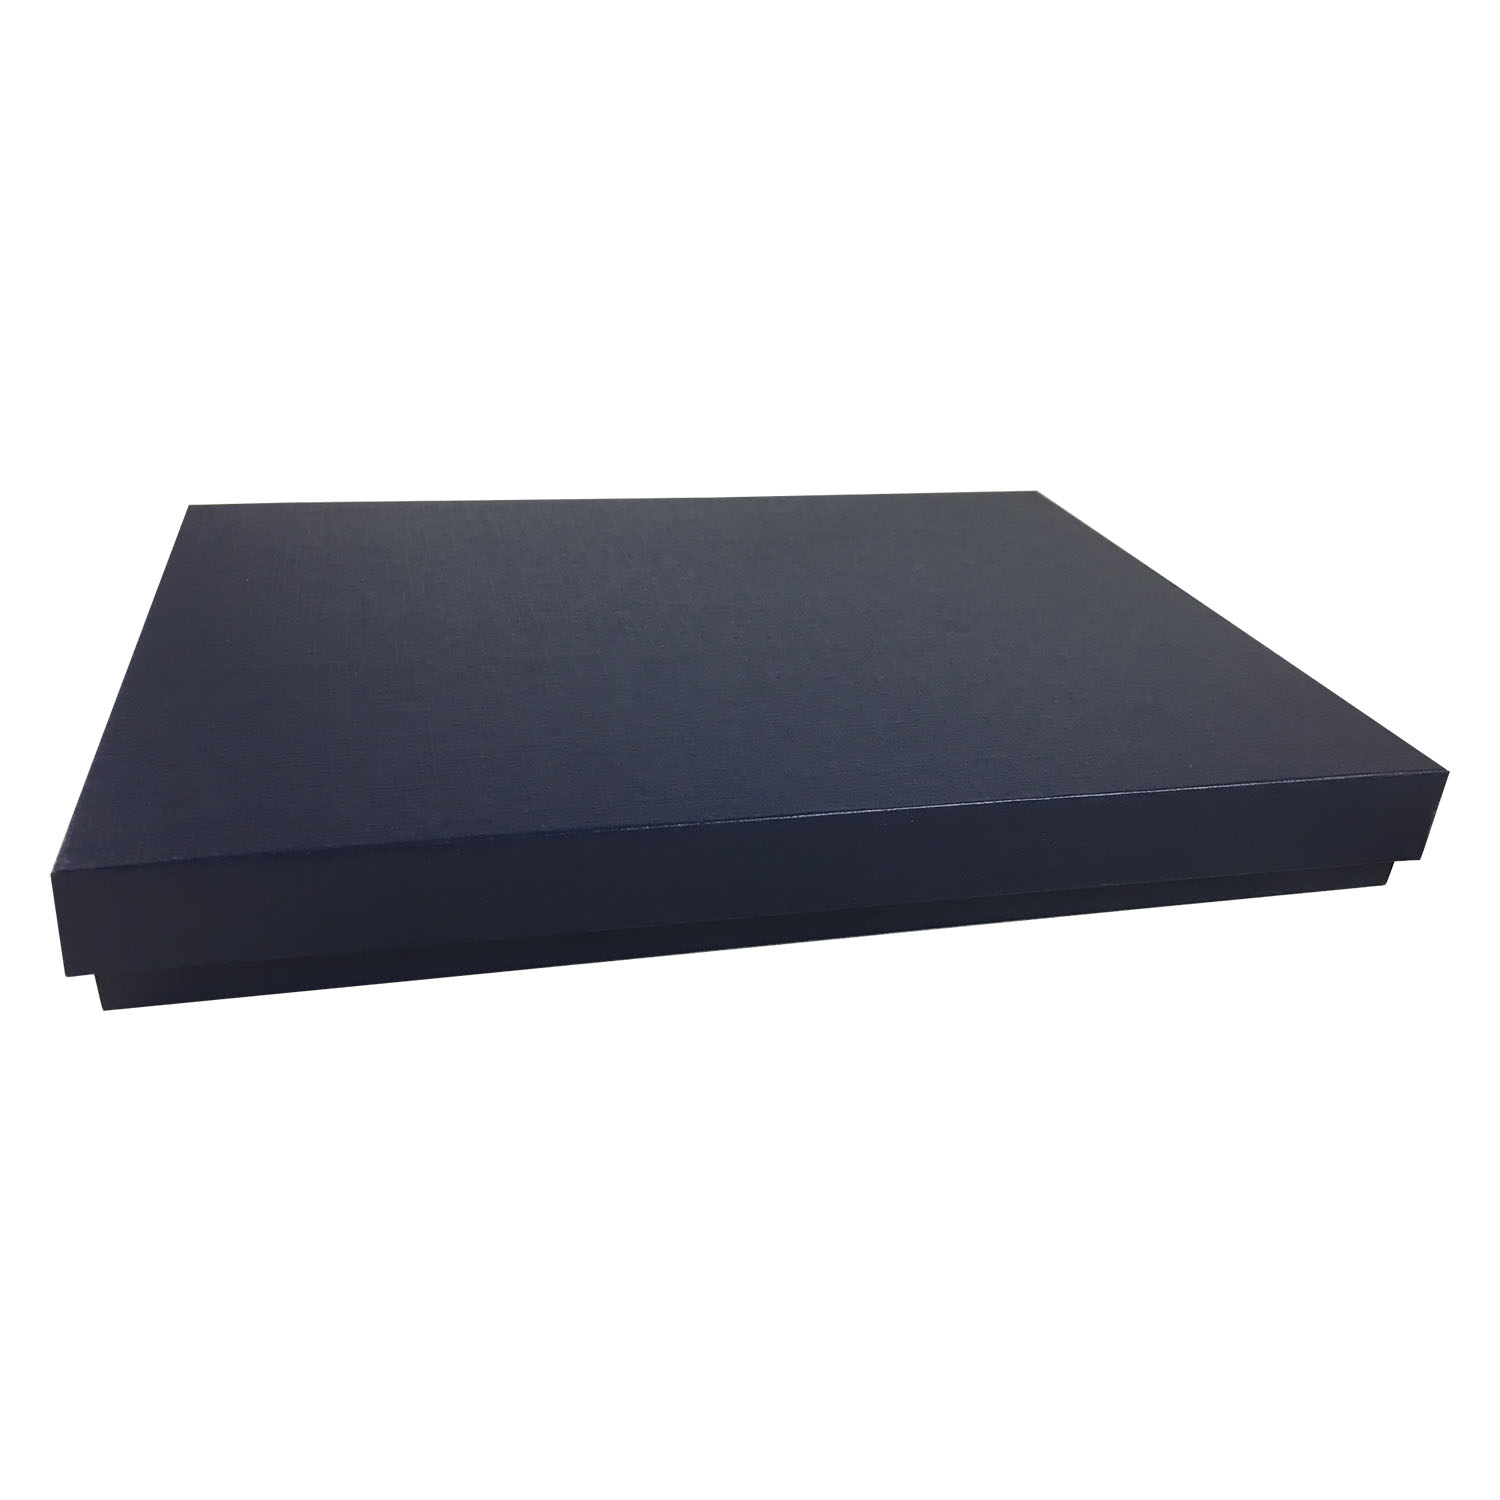 closed lift lid paper box